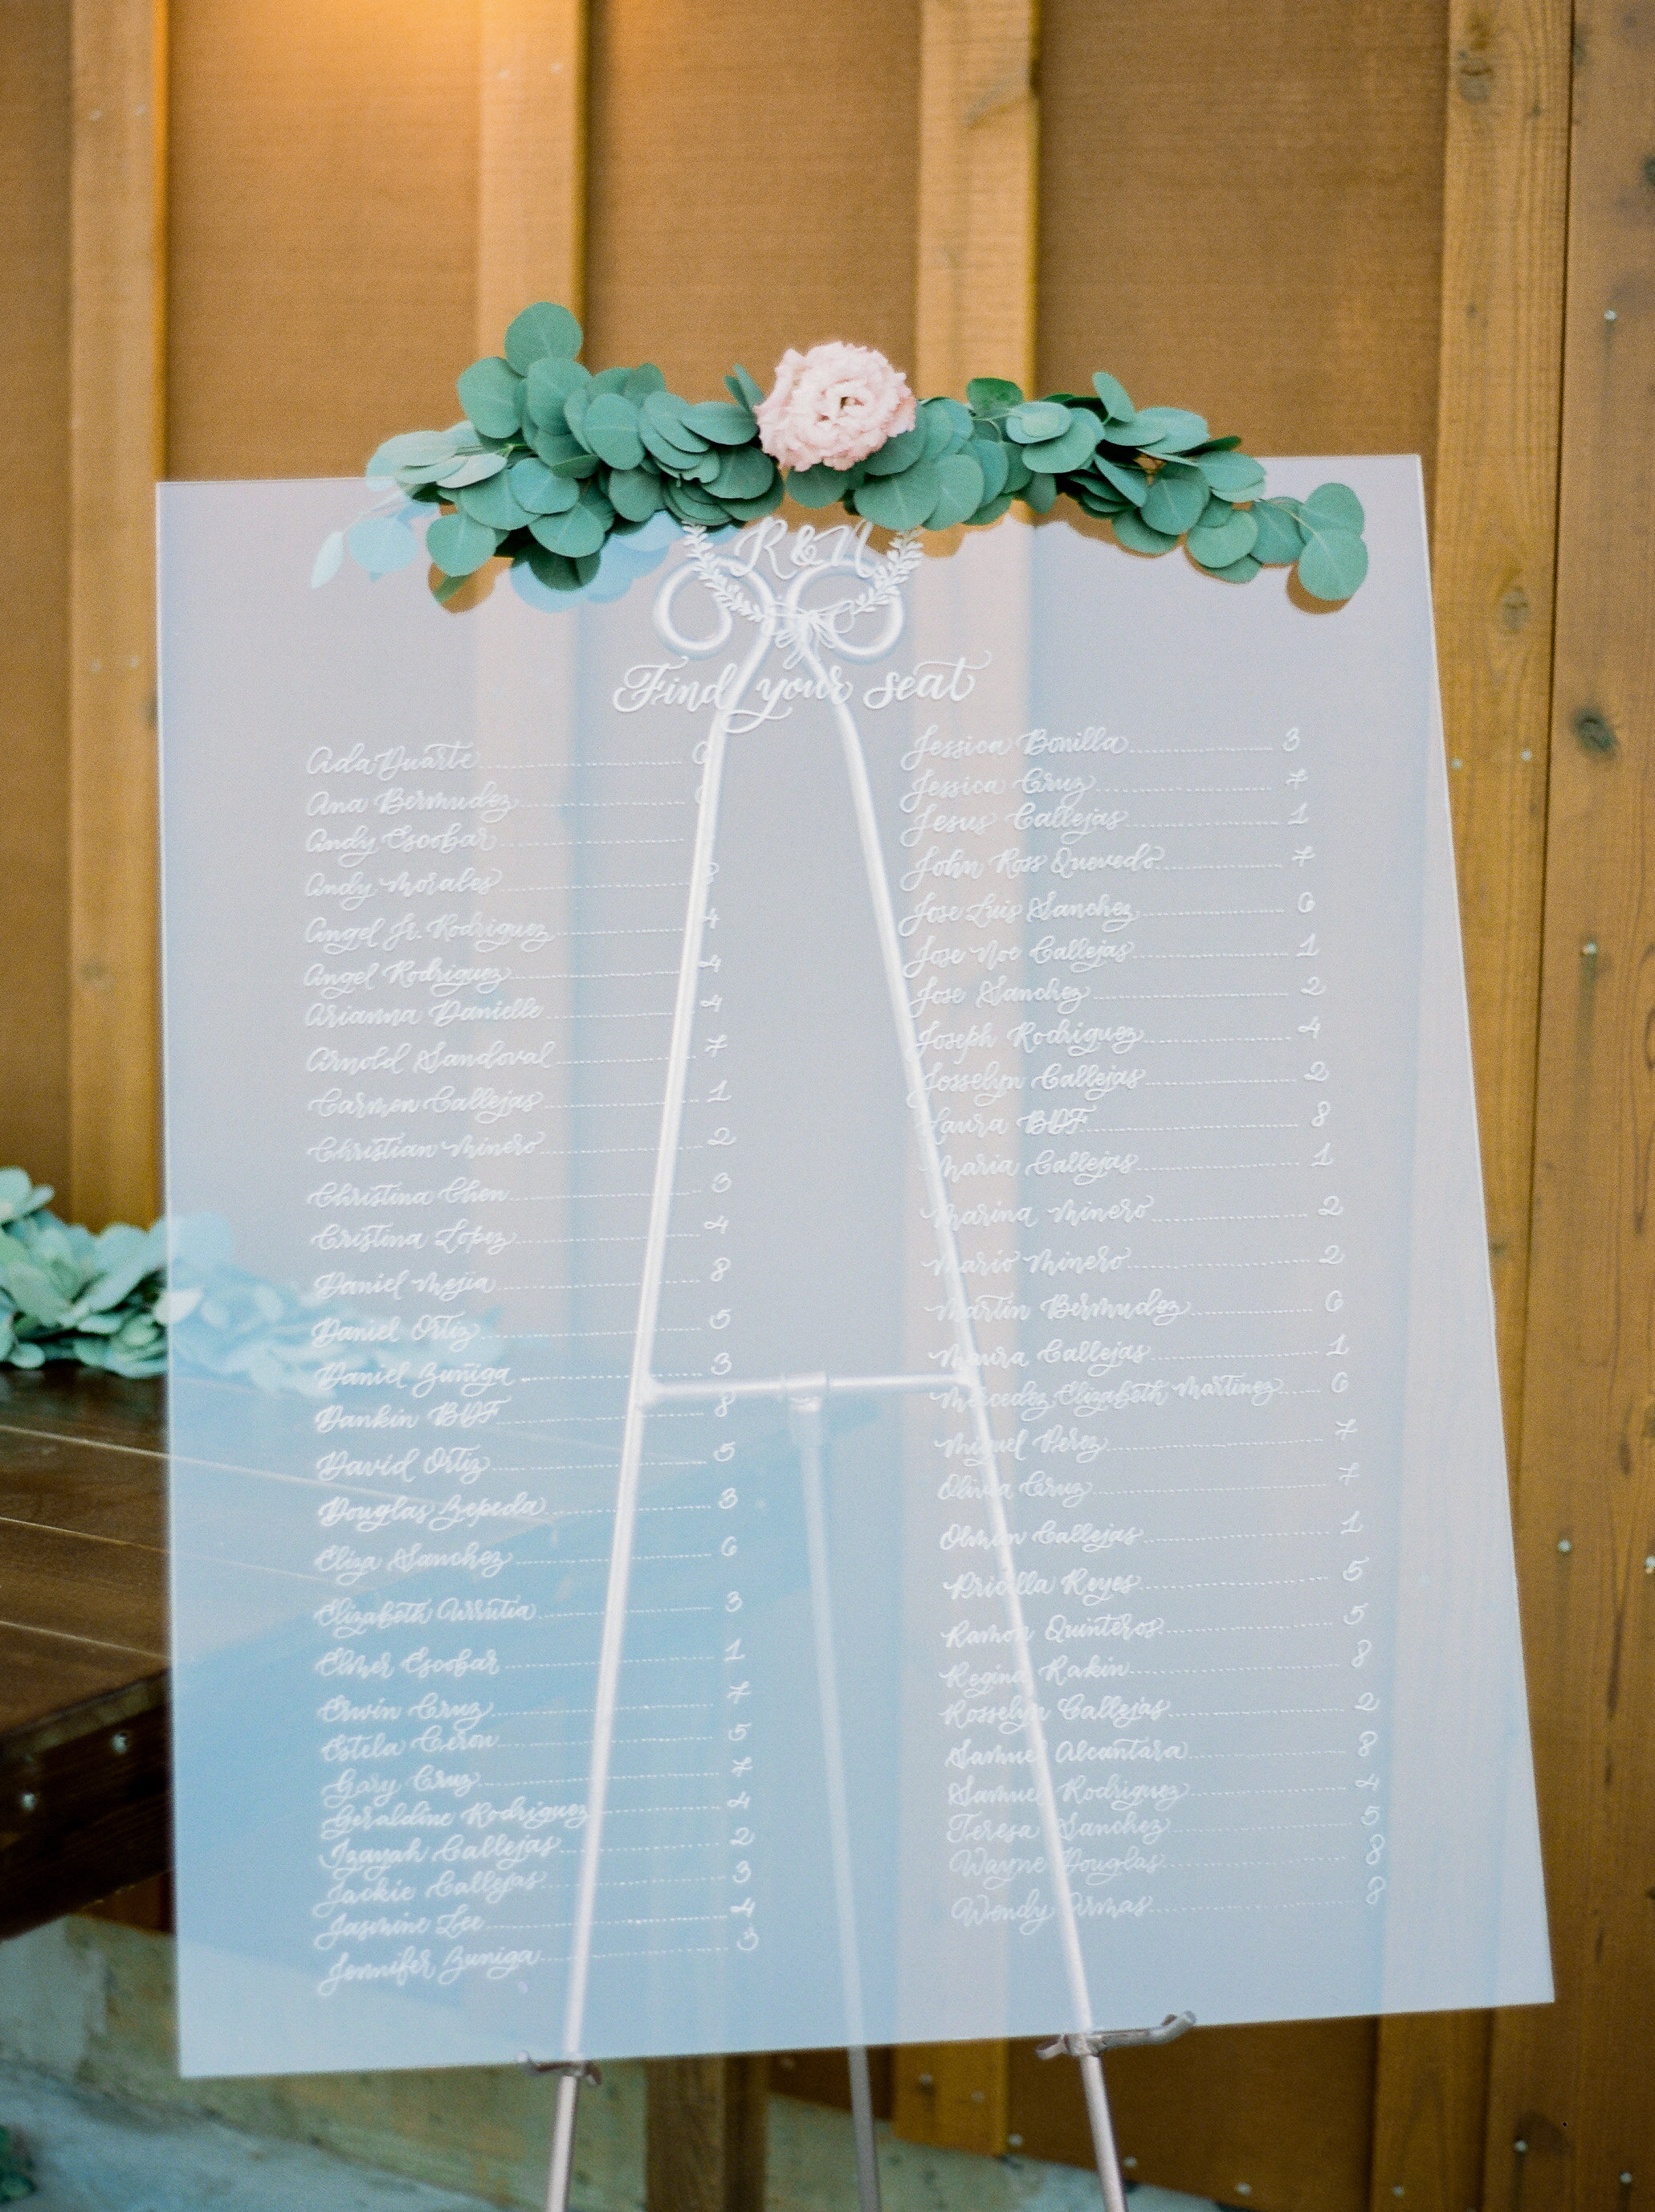 Yosemite wedding acrylic seating chart calligraphy items by paperloveme1.jpg